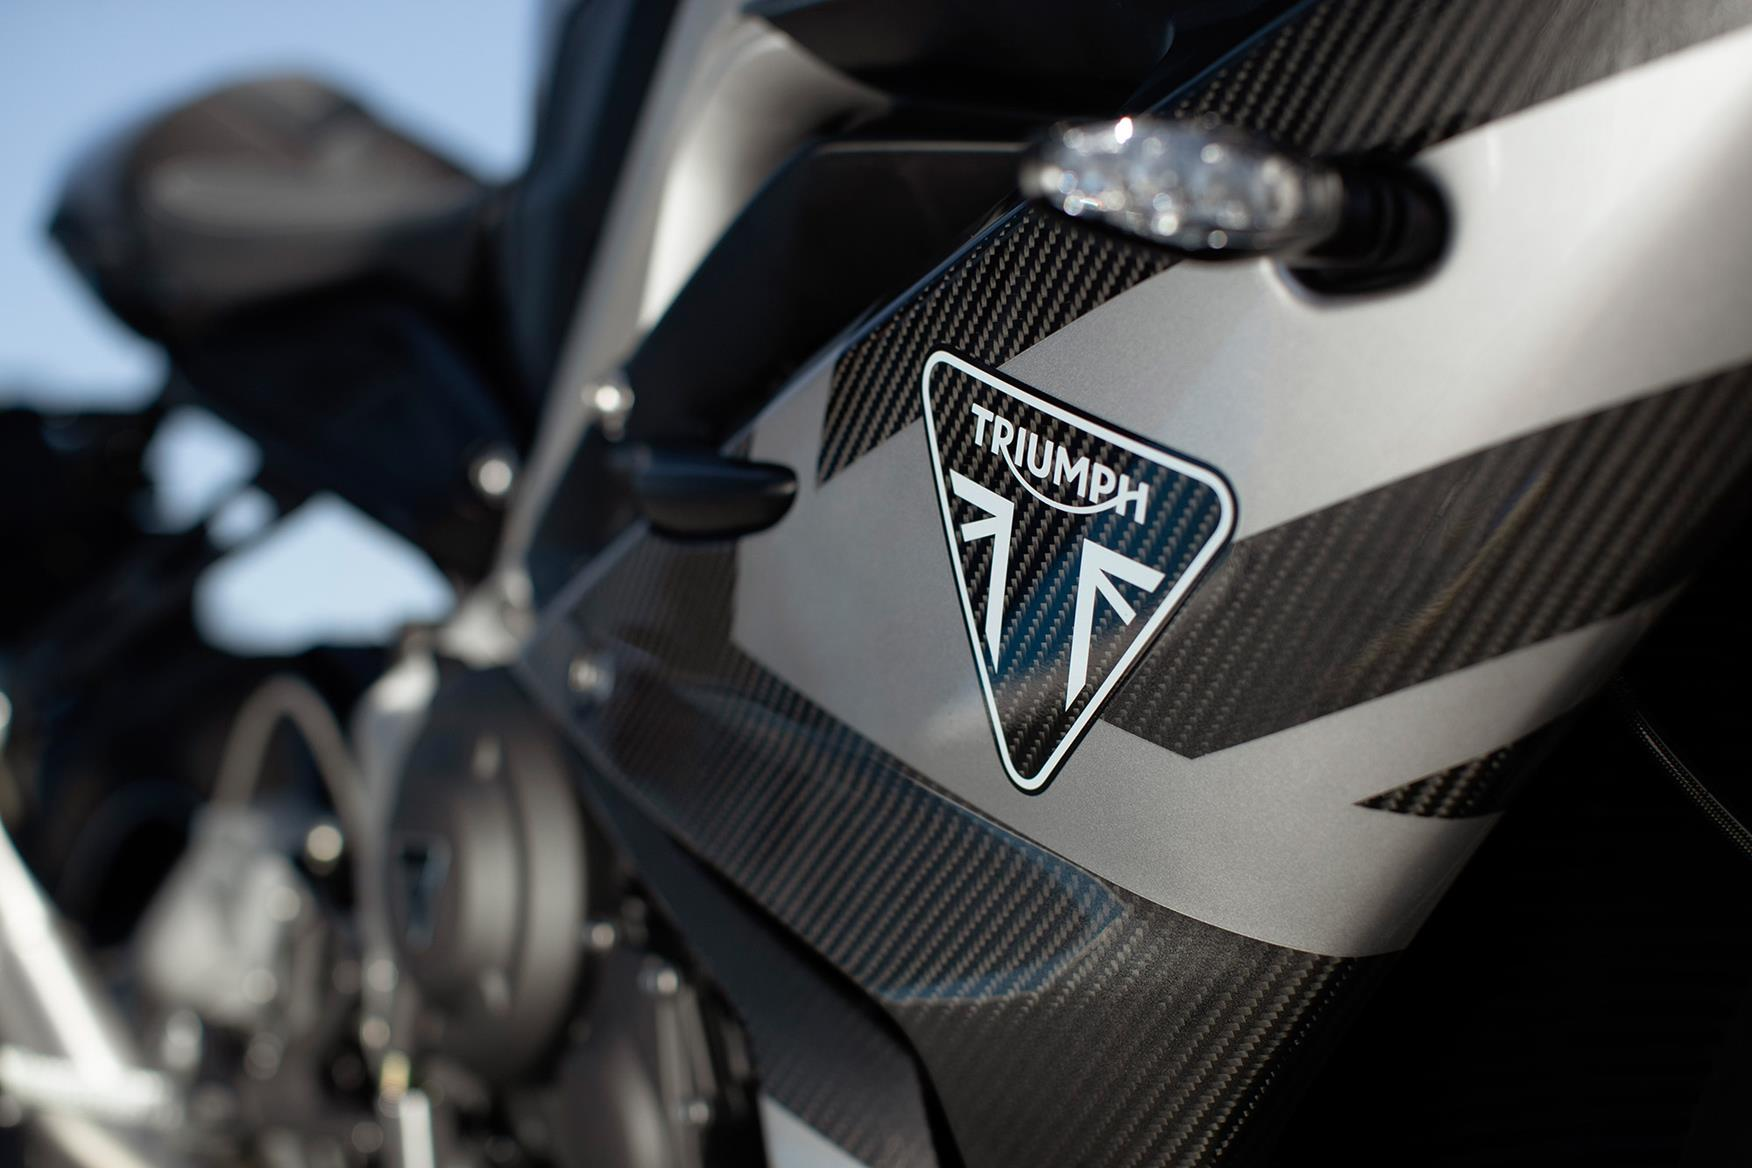 Triumph Daytona 765 Moto2 Limited Edition carbon bodywork